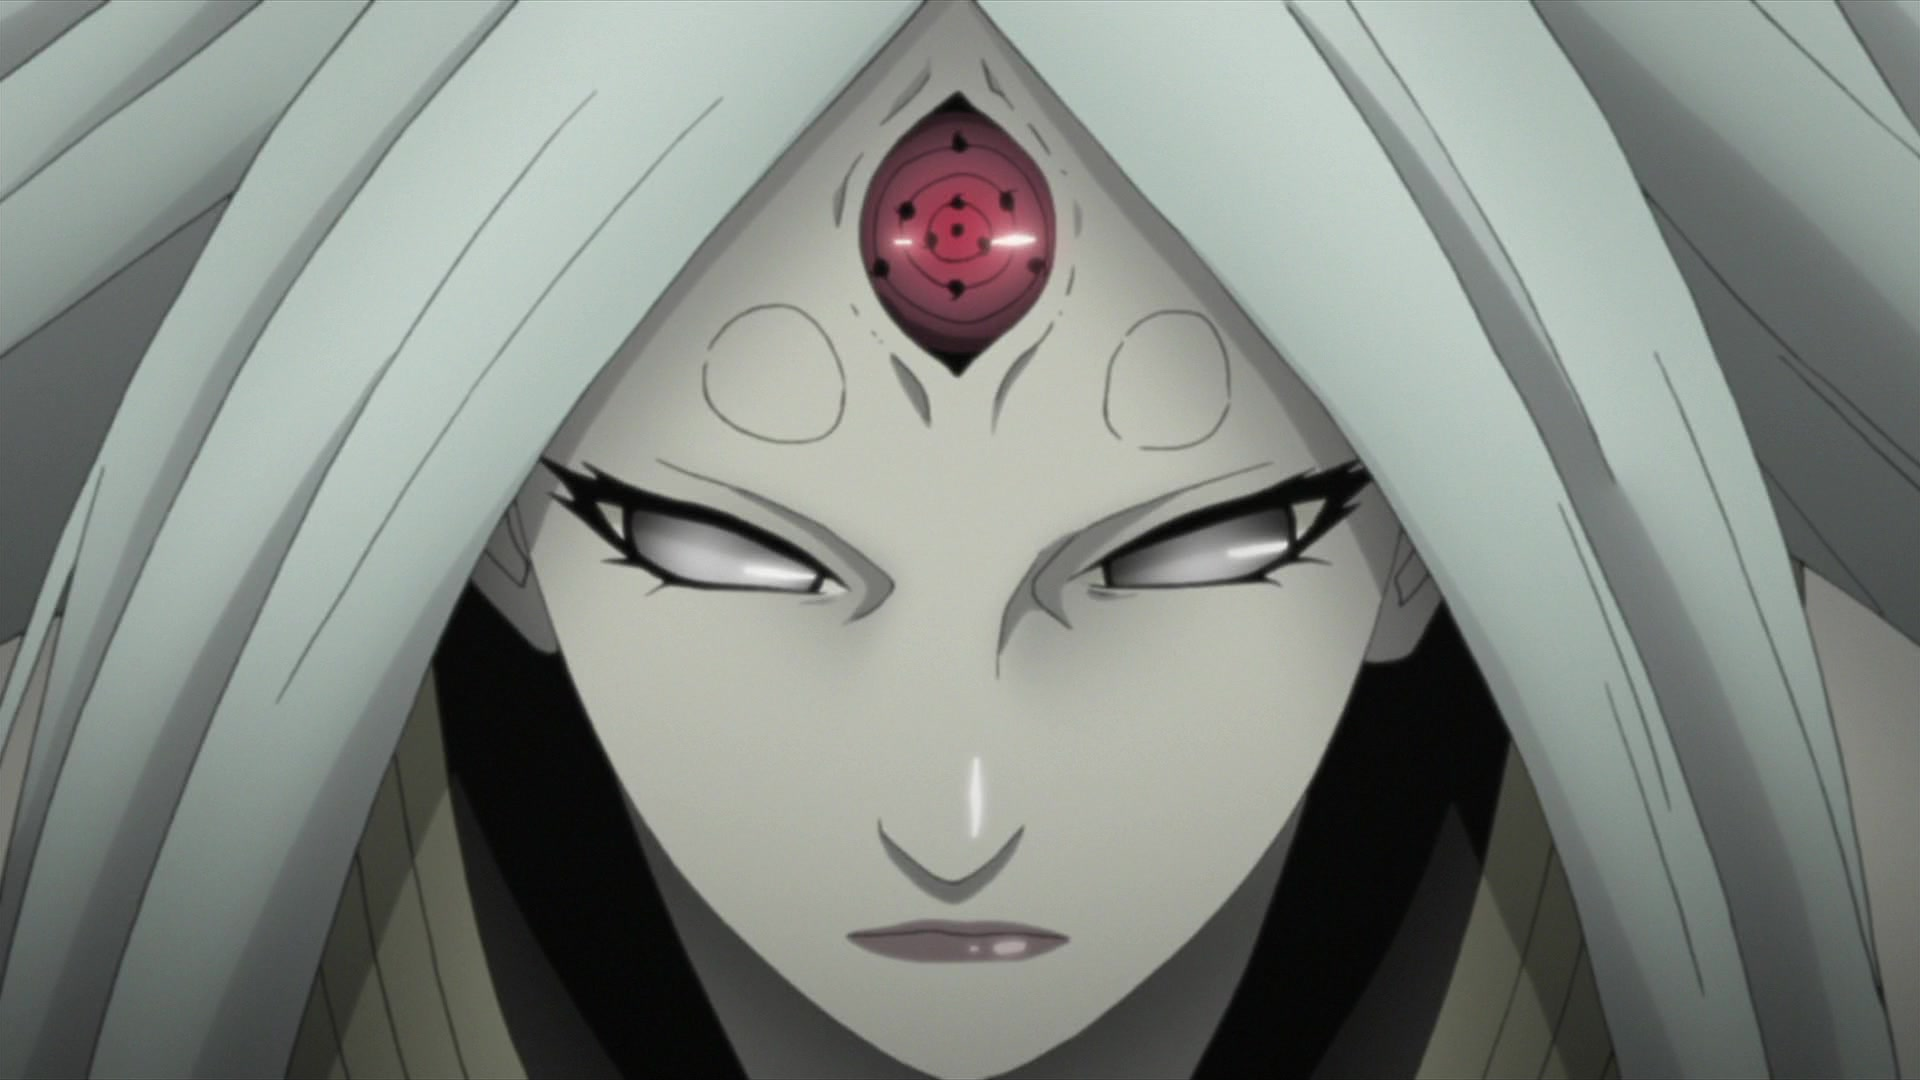 Naruto Shippuden: Season 17 Episode 459, She Of The